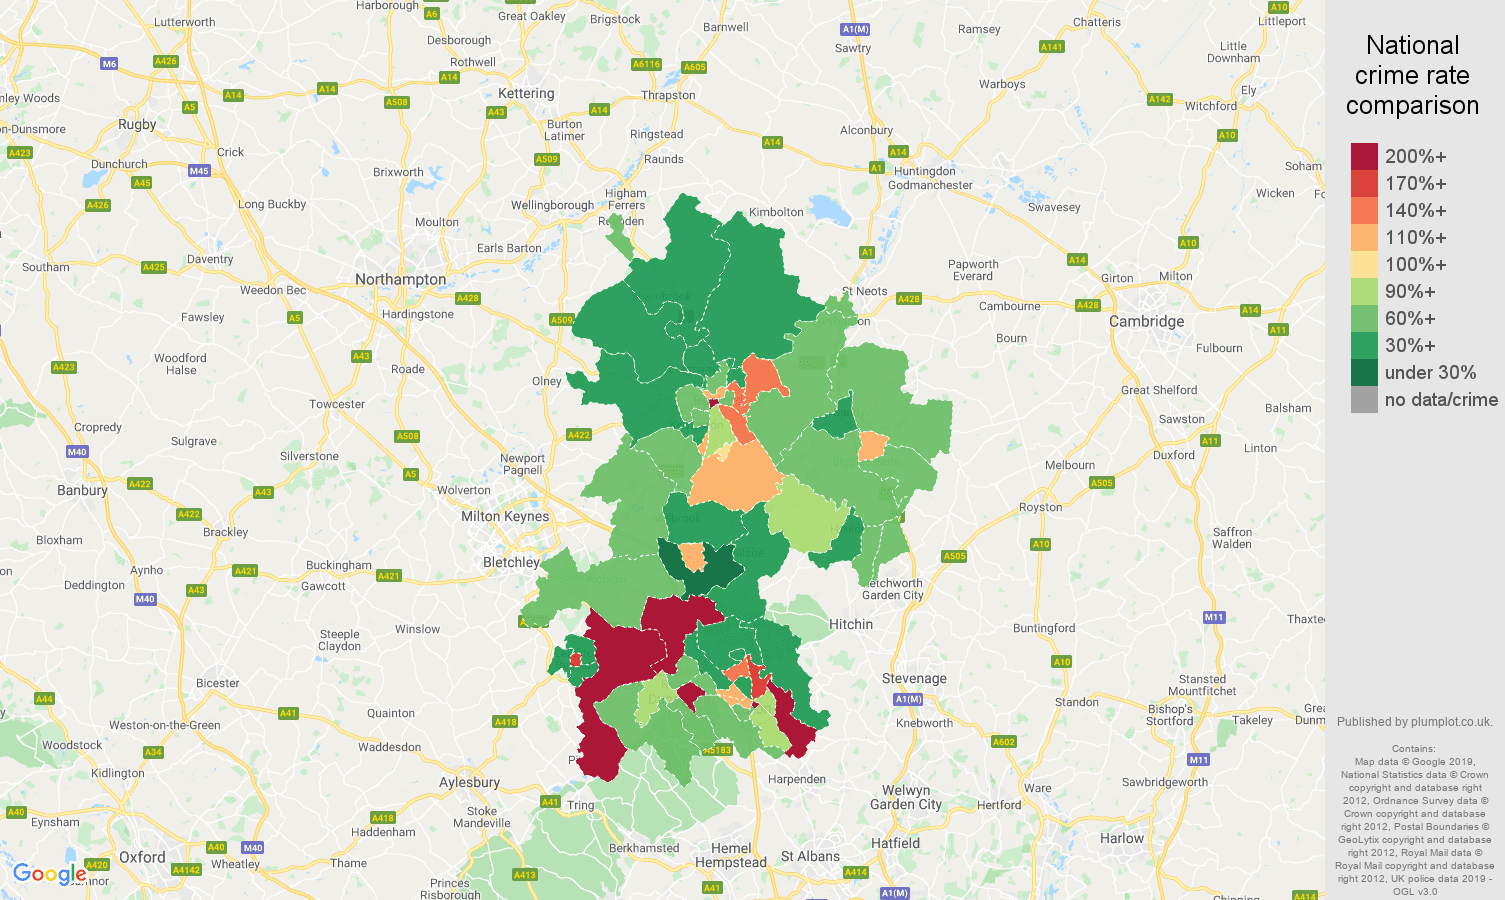 Bedfordshire other theft crime rate comparison map